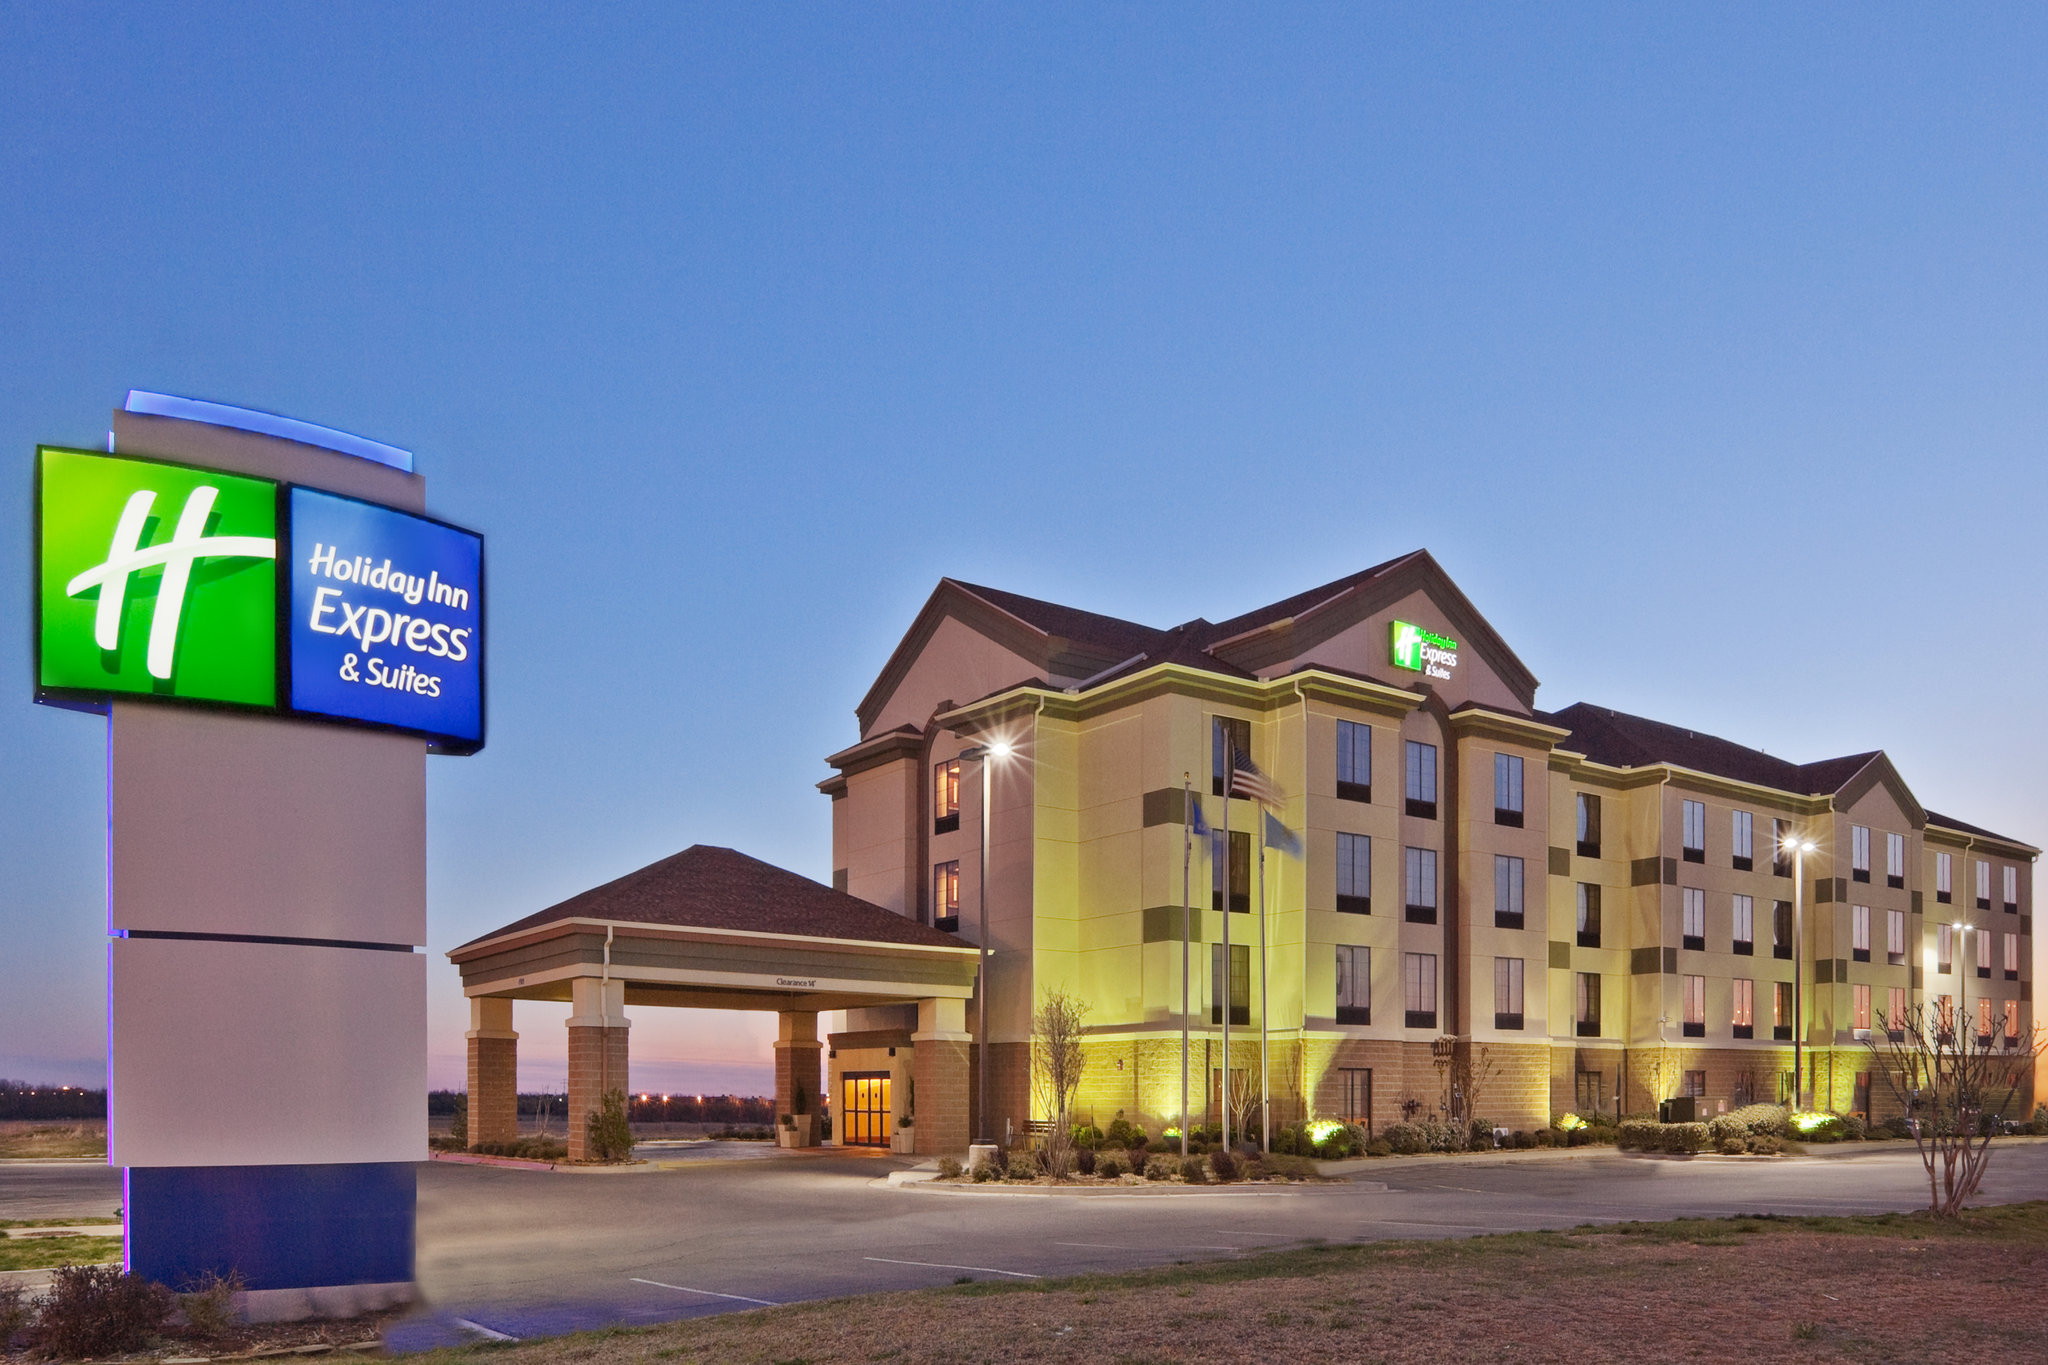 Holiday Inn Express Hotel & Suites Shawn